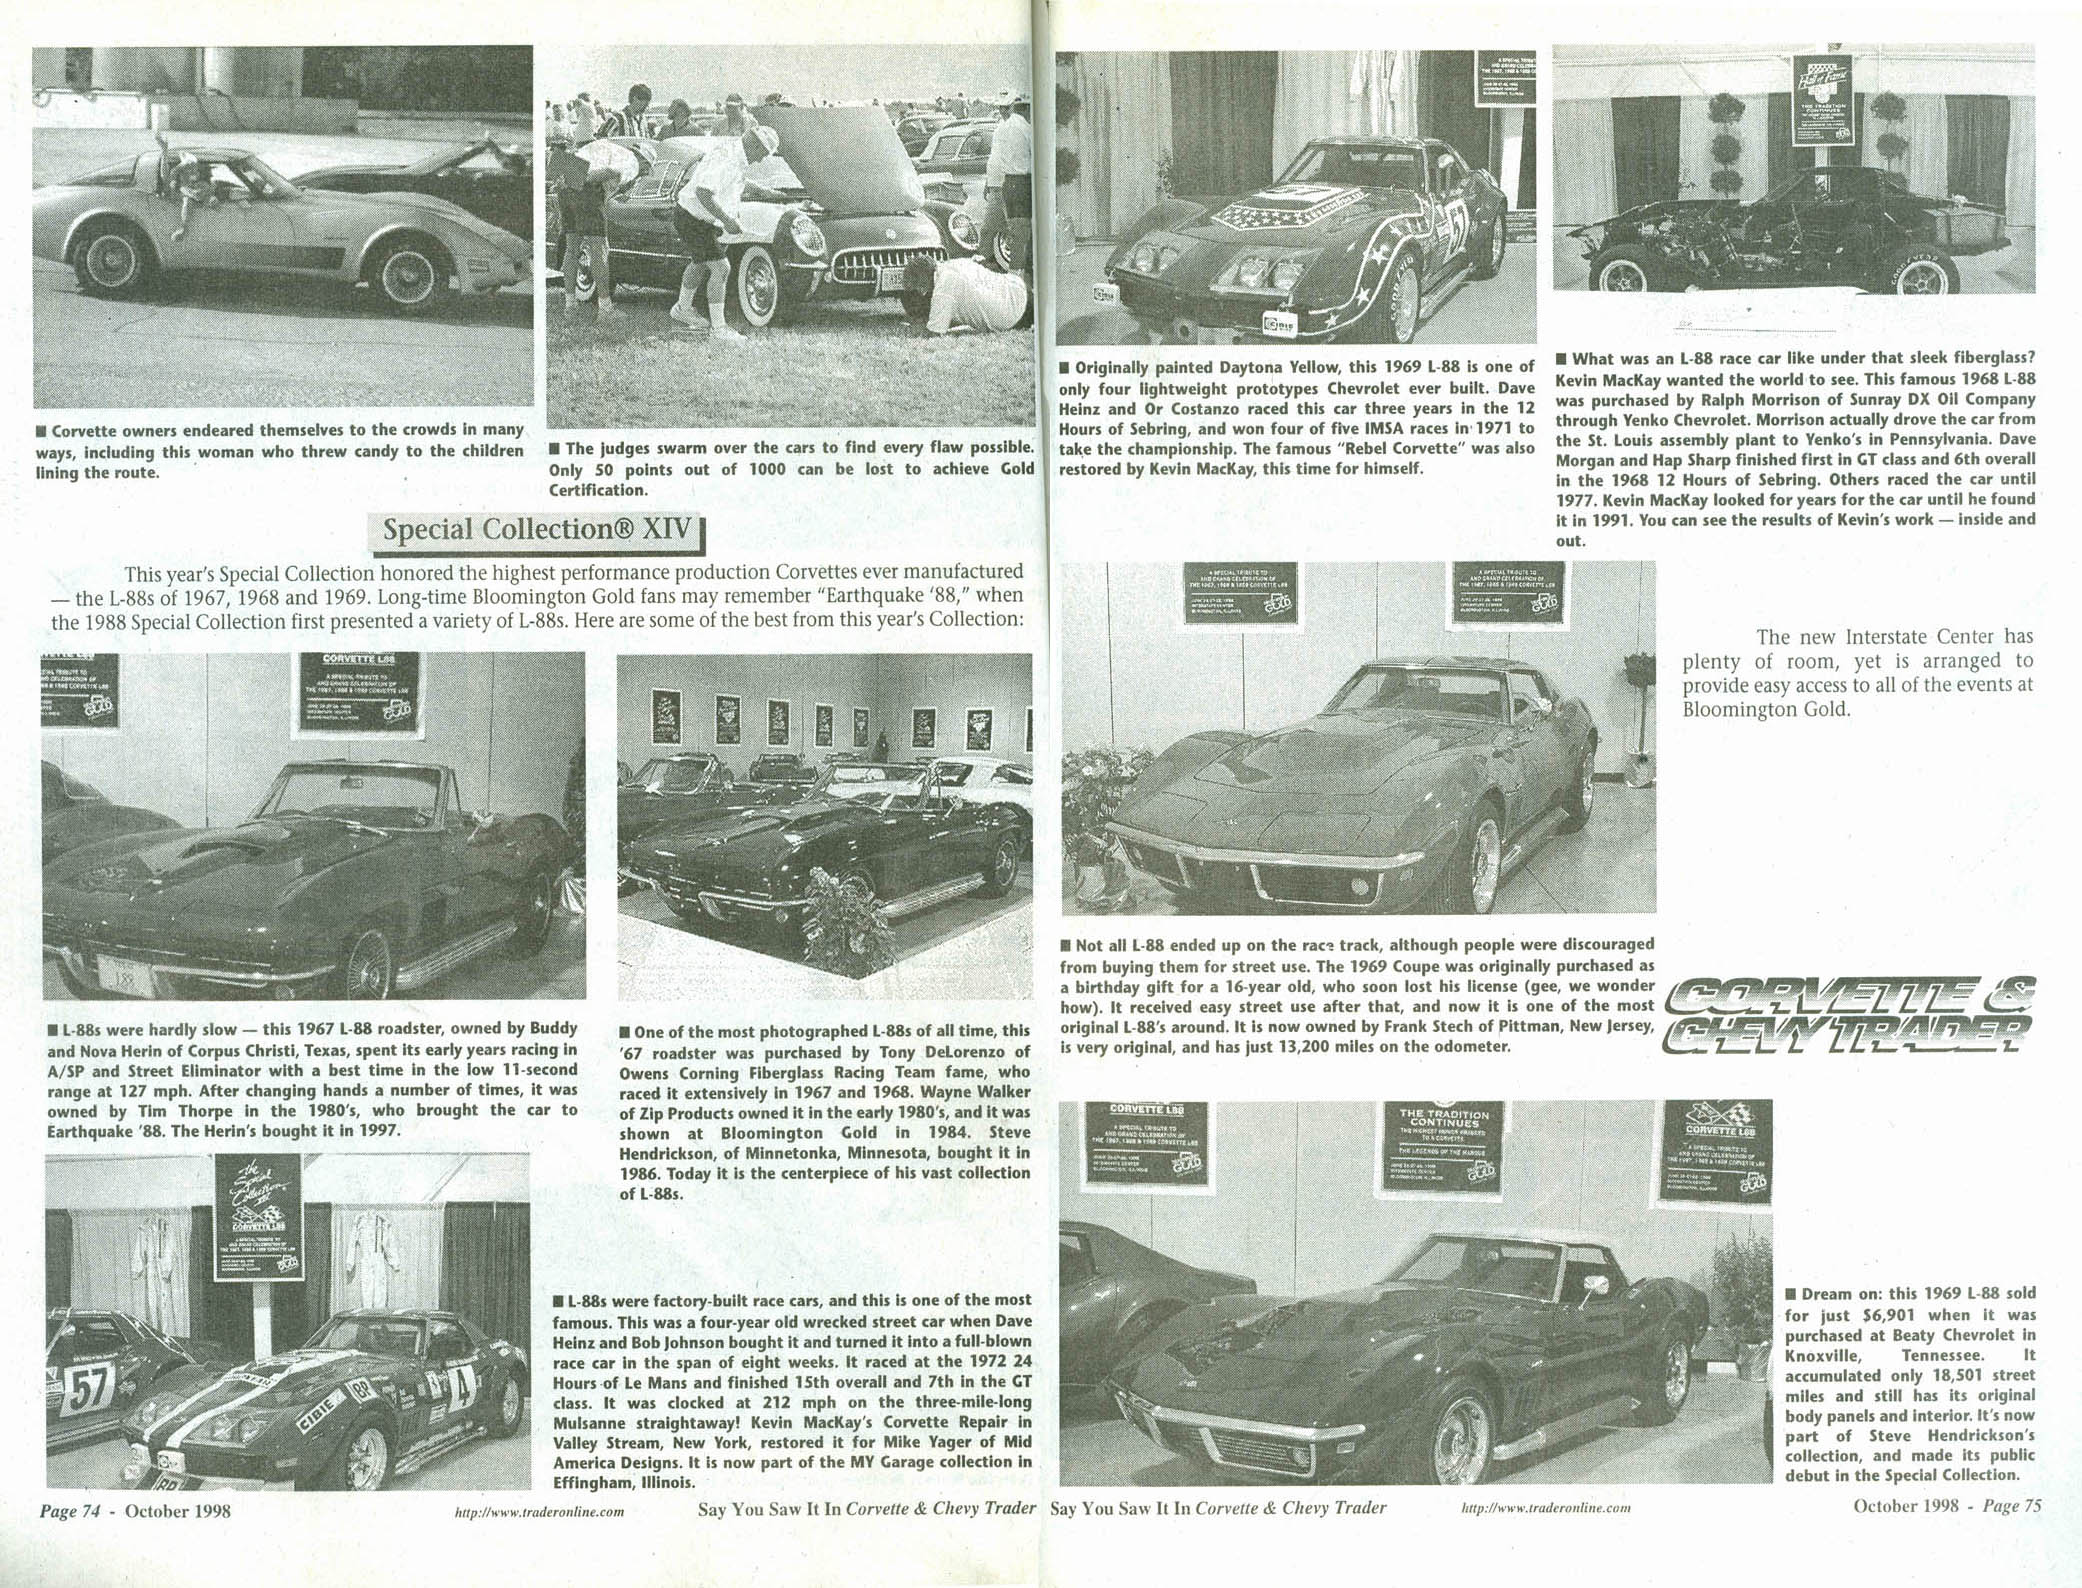 Corvette & Chevy Trader October 1998: Special Collection XIV